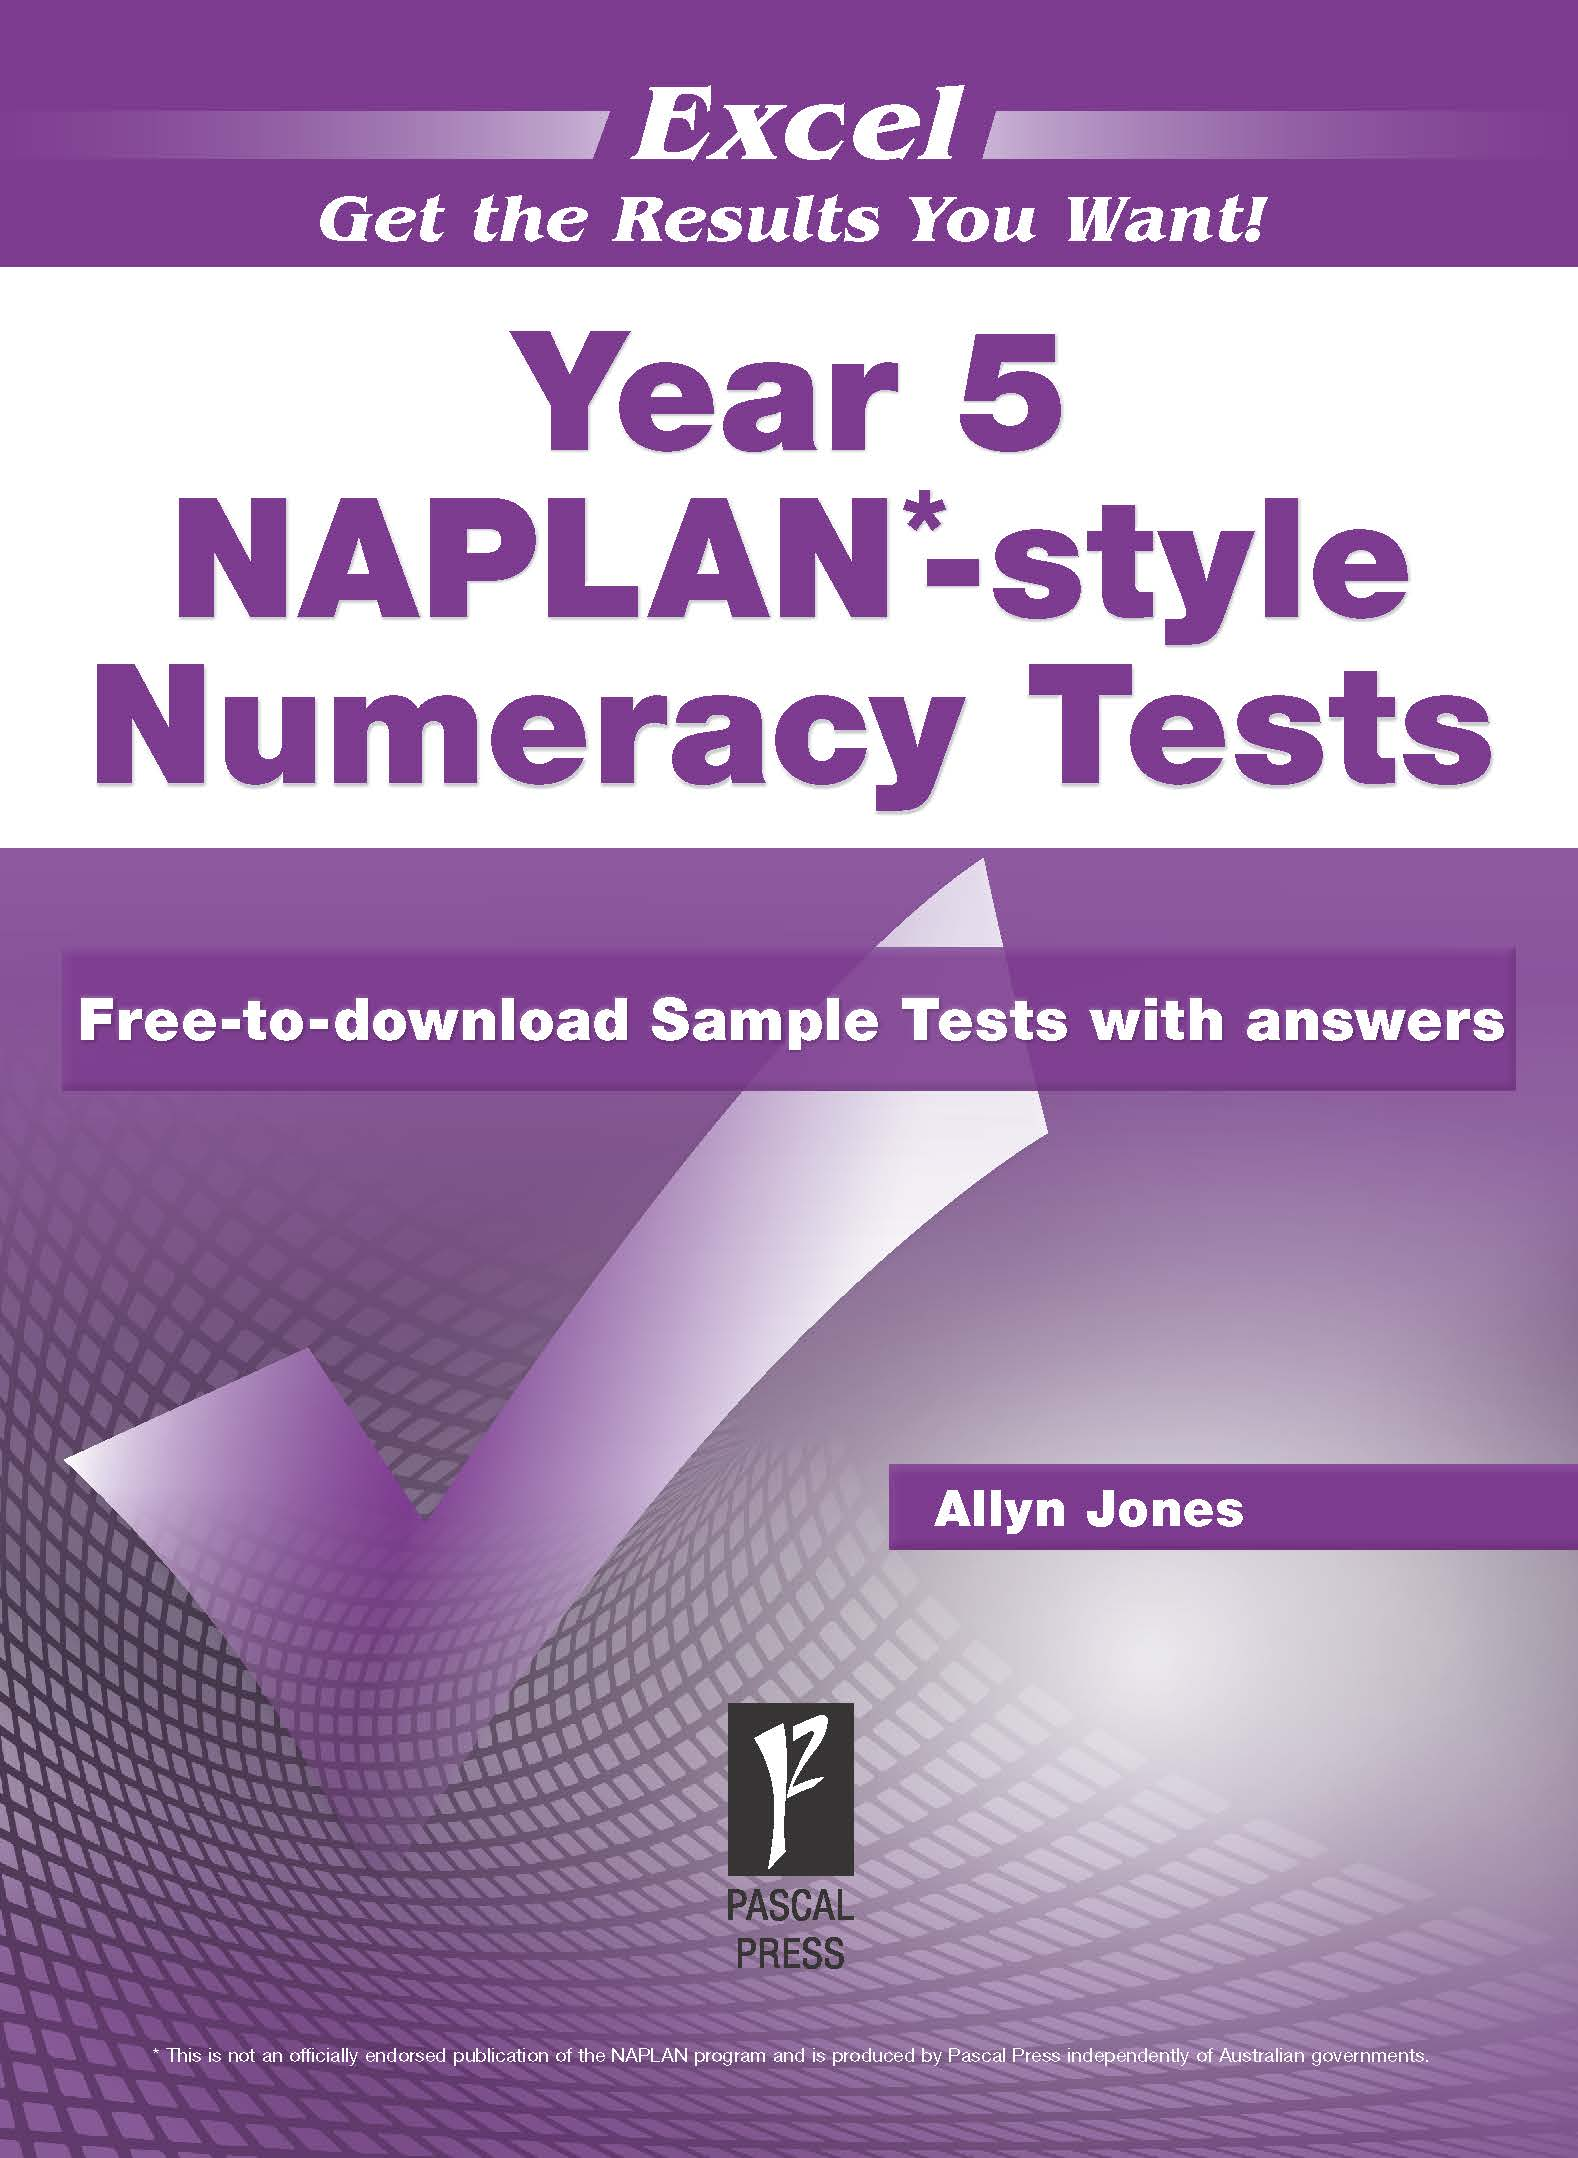 Excel NAPLAN*-style Numeracy Tests Year 5